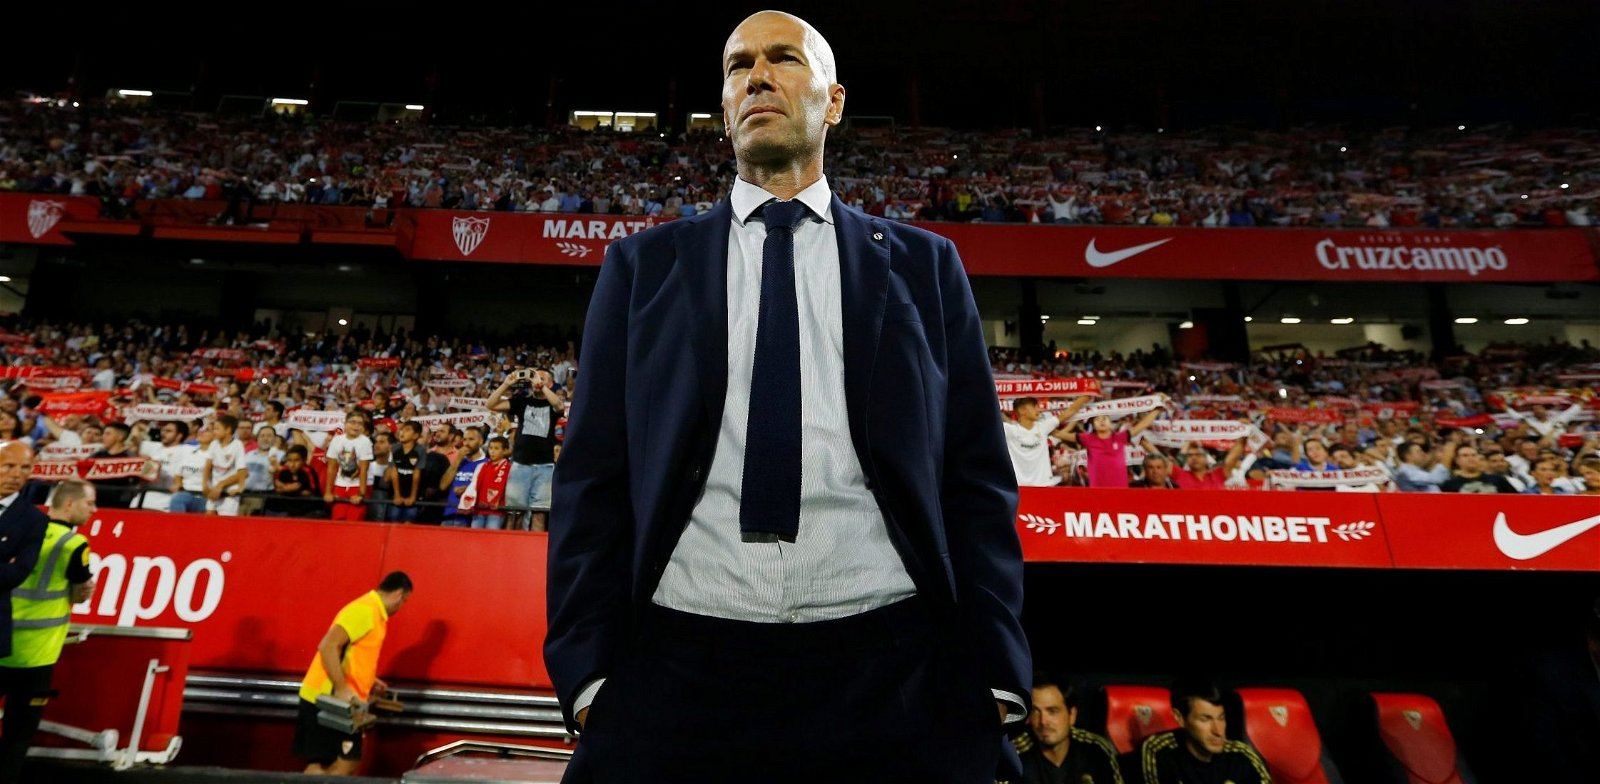 Zinedine Zidane is turning out to be the saviour Real Madrid needed after all